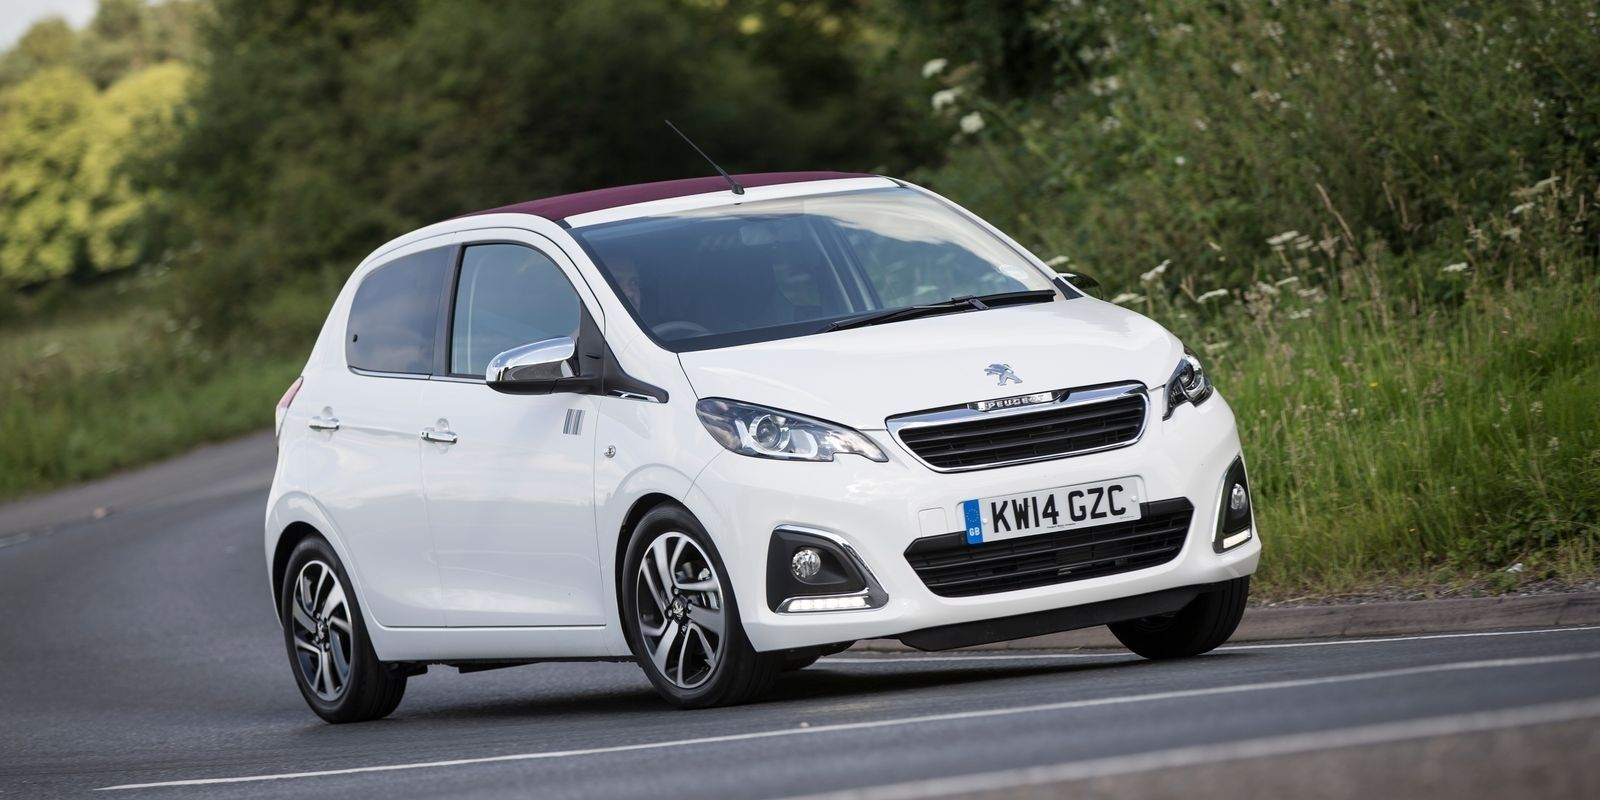 When Can I Buy A 2019 Peugeot 108 Specs Car 2020 Peugeot Any